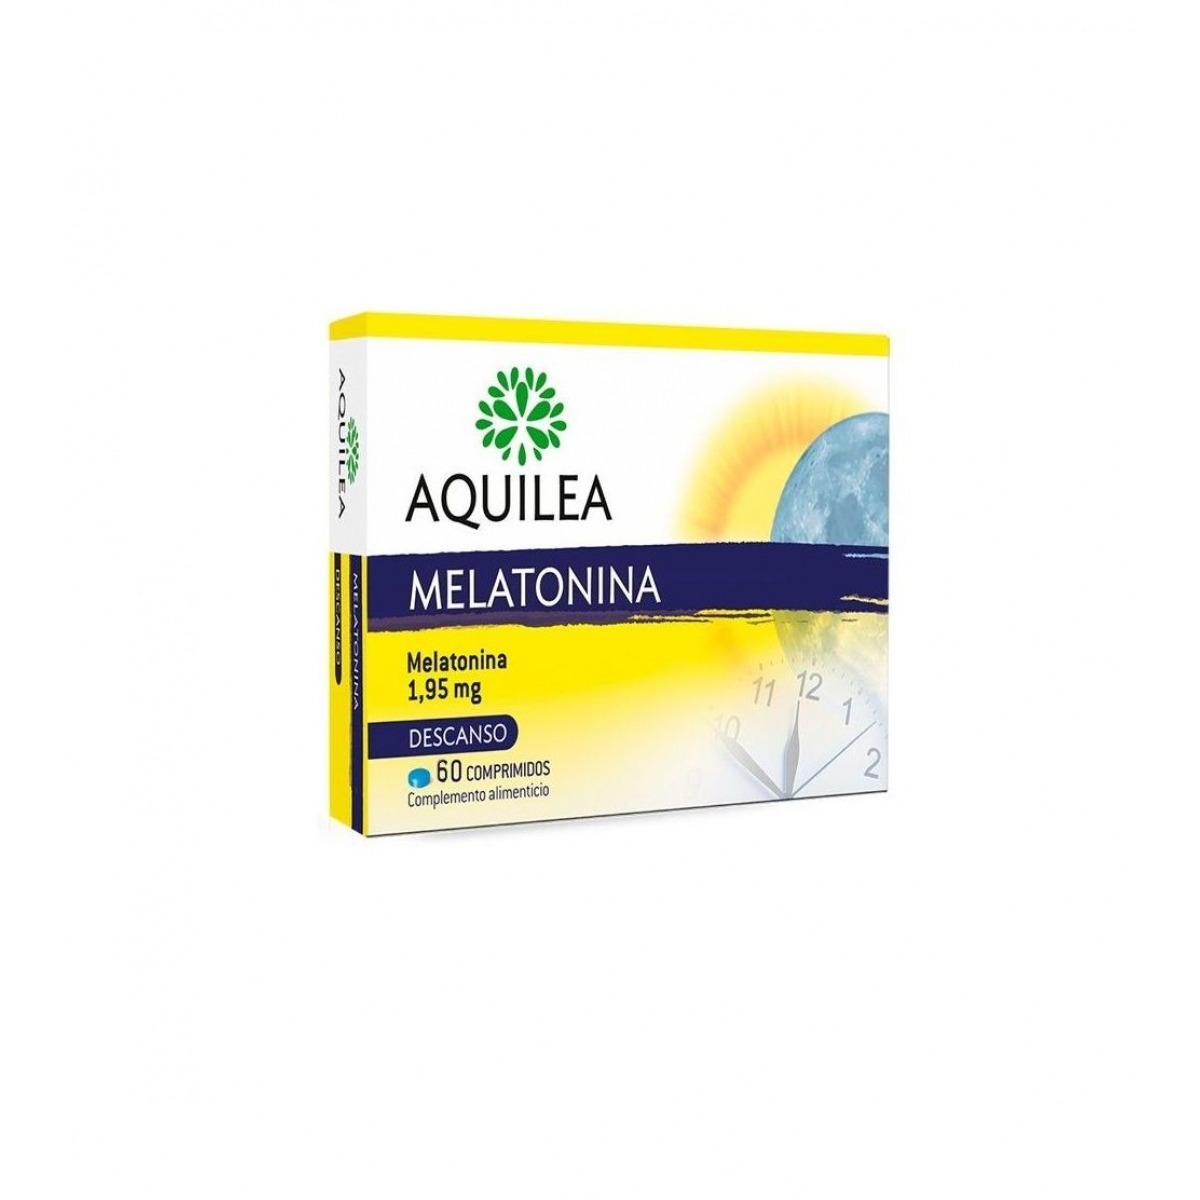 AQUILEAMELATONINA1.95MG60COMP I1